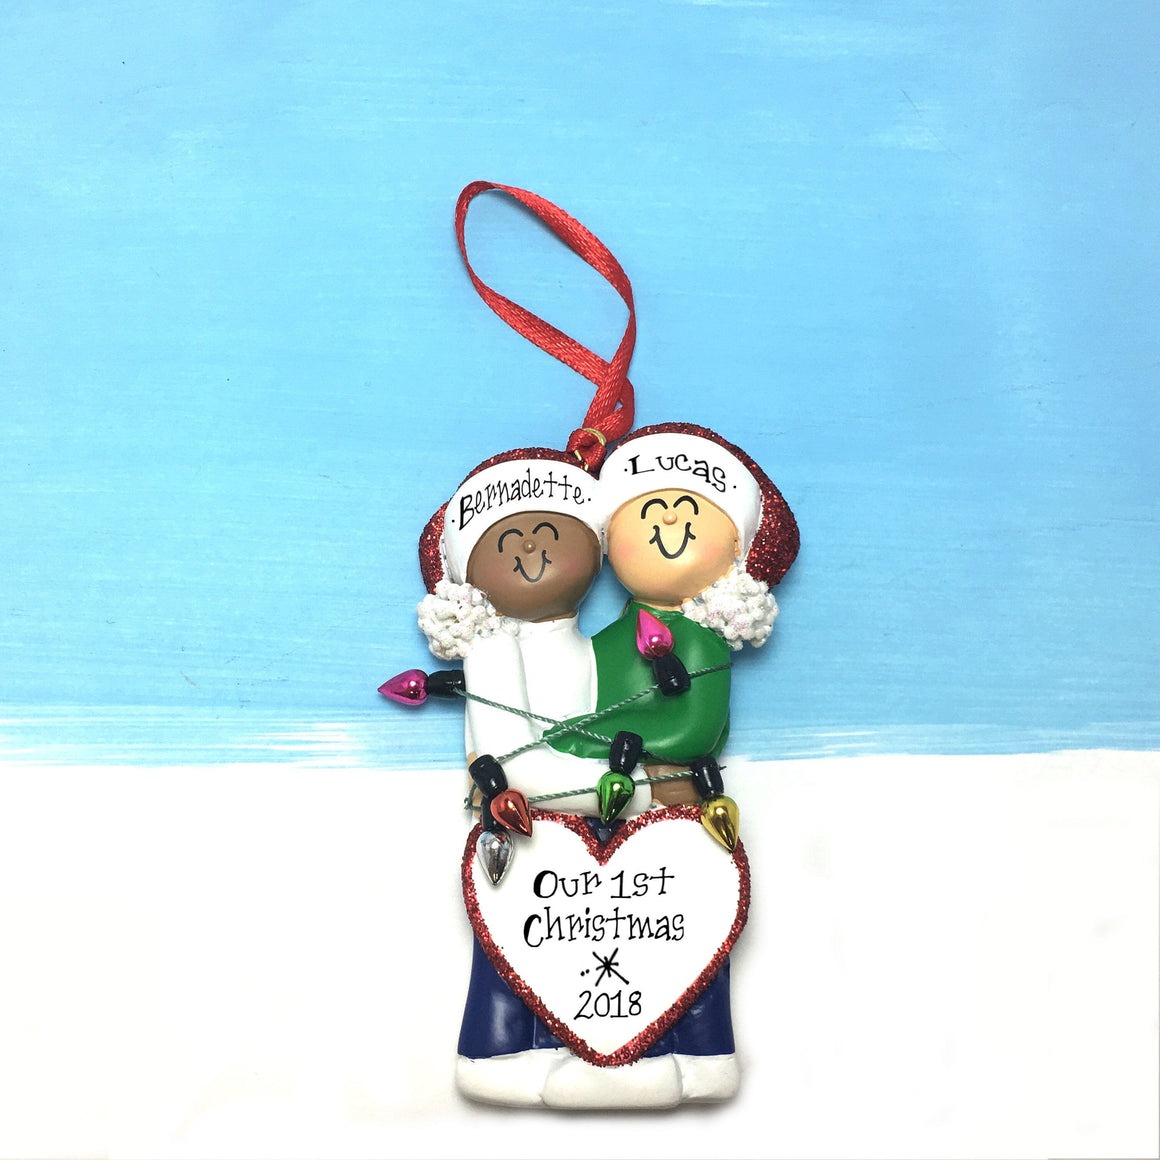 Happy Mixed Couple Tangled in Christmas Lights Personalized Christmas Ornament / Female of Color / White Male / Engaged / First Christmas